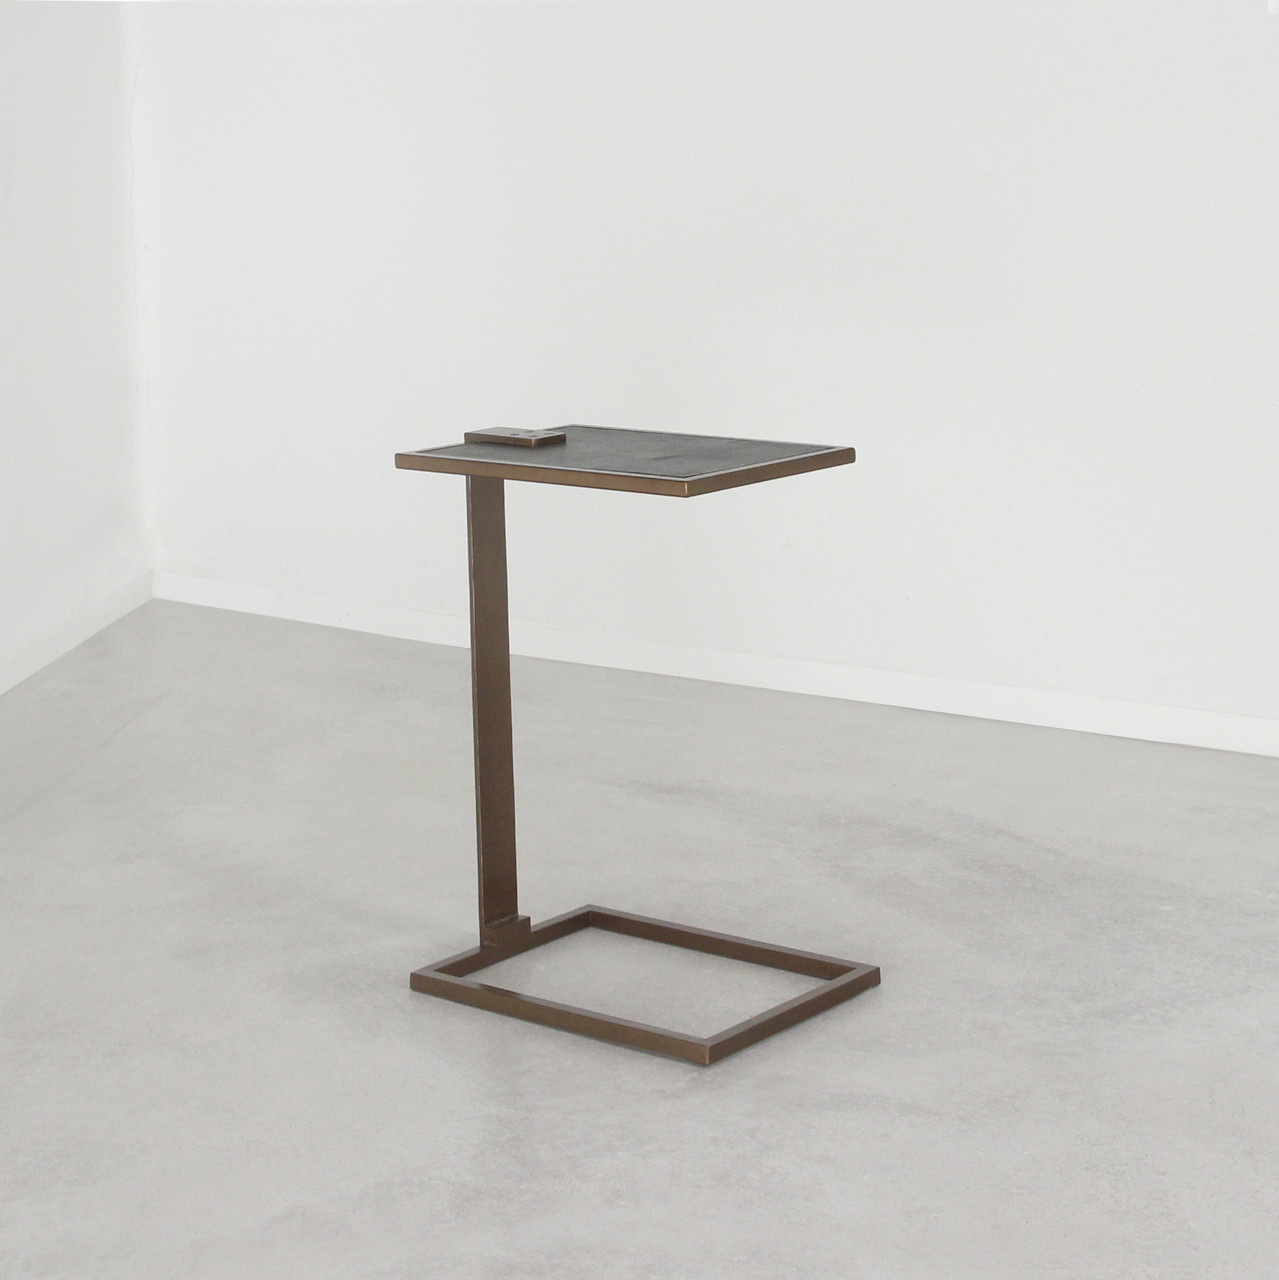 As Shown: Deco Drink Table Size: 10 x 14.5 x 20.5 H inches Material: Steel with Bronze Finish, Leather